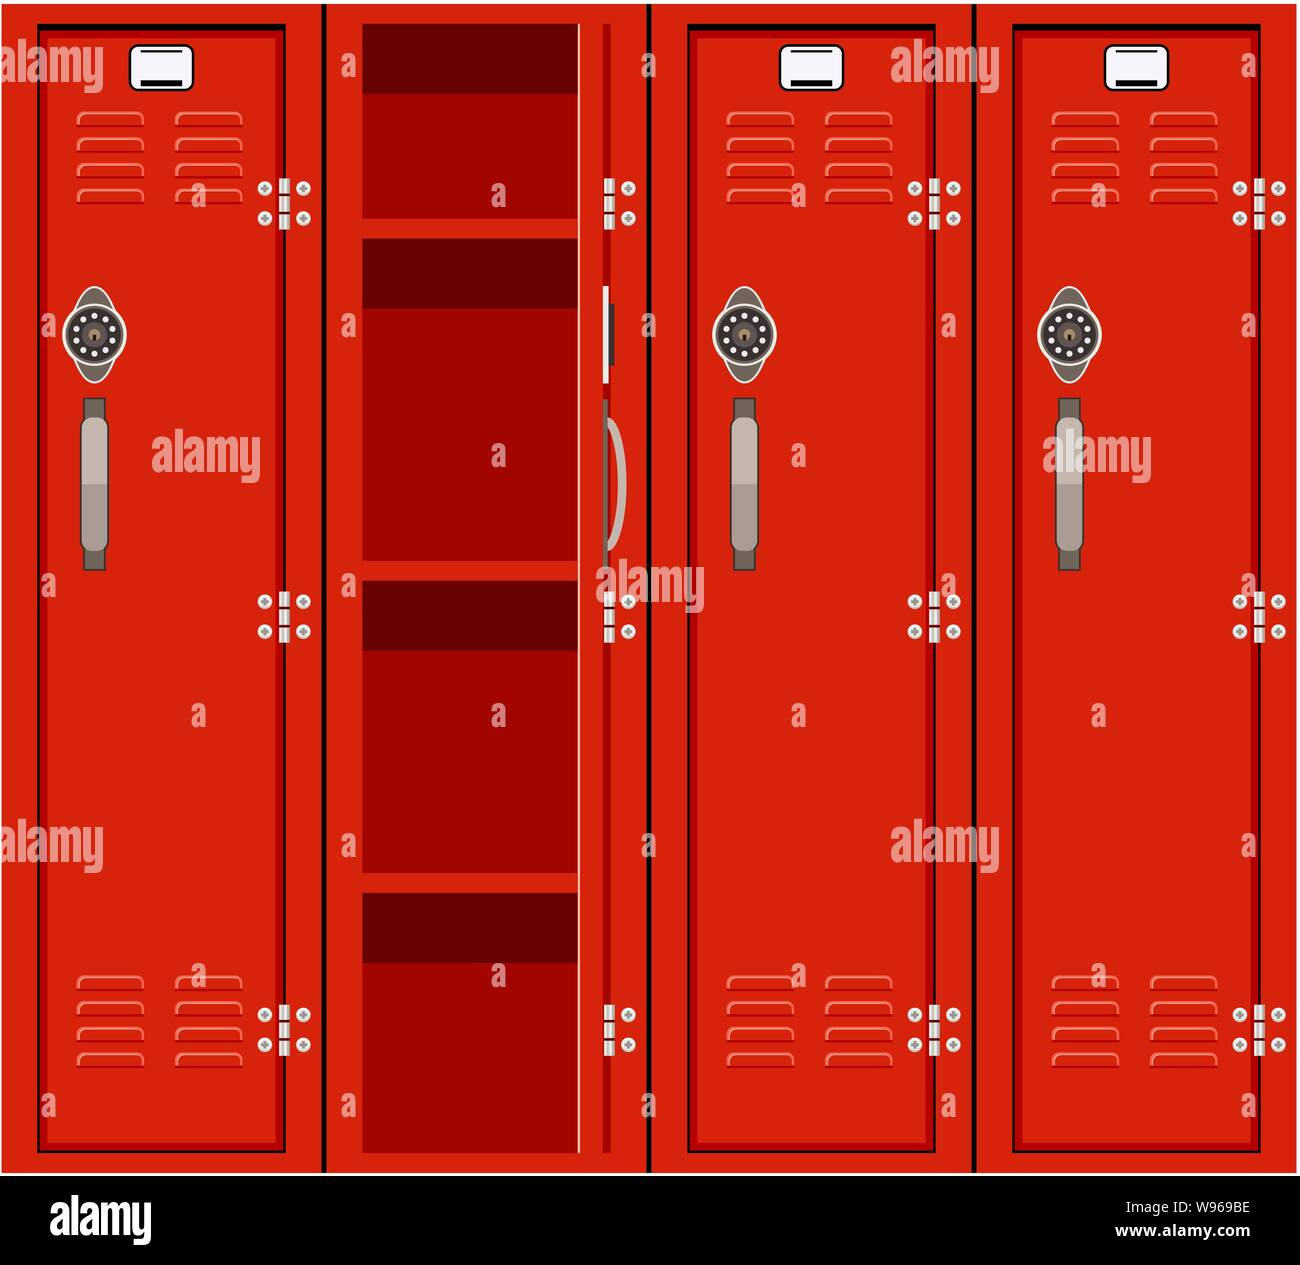 Vector Red School Lockers For Education Background Illustration Of Metal School Locker Opened And Closed Stock Vector Image Art Alamy